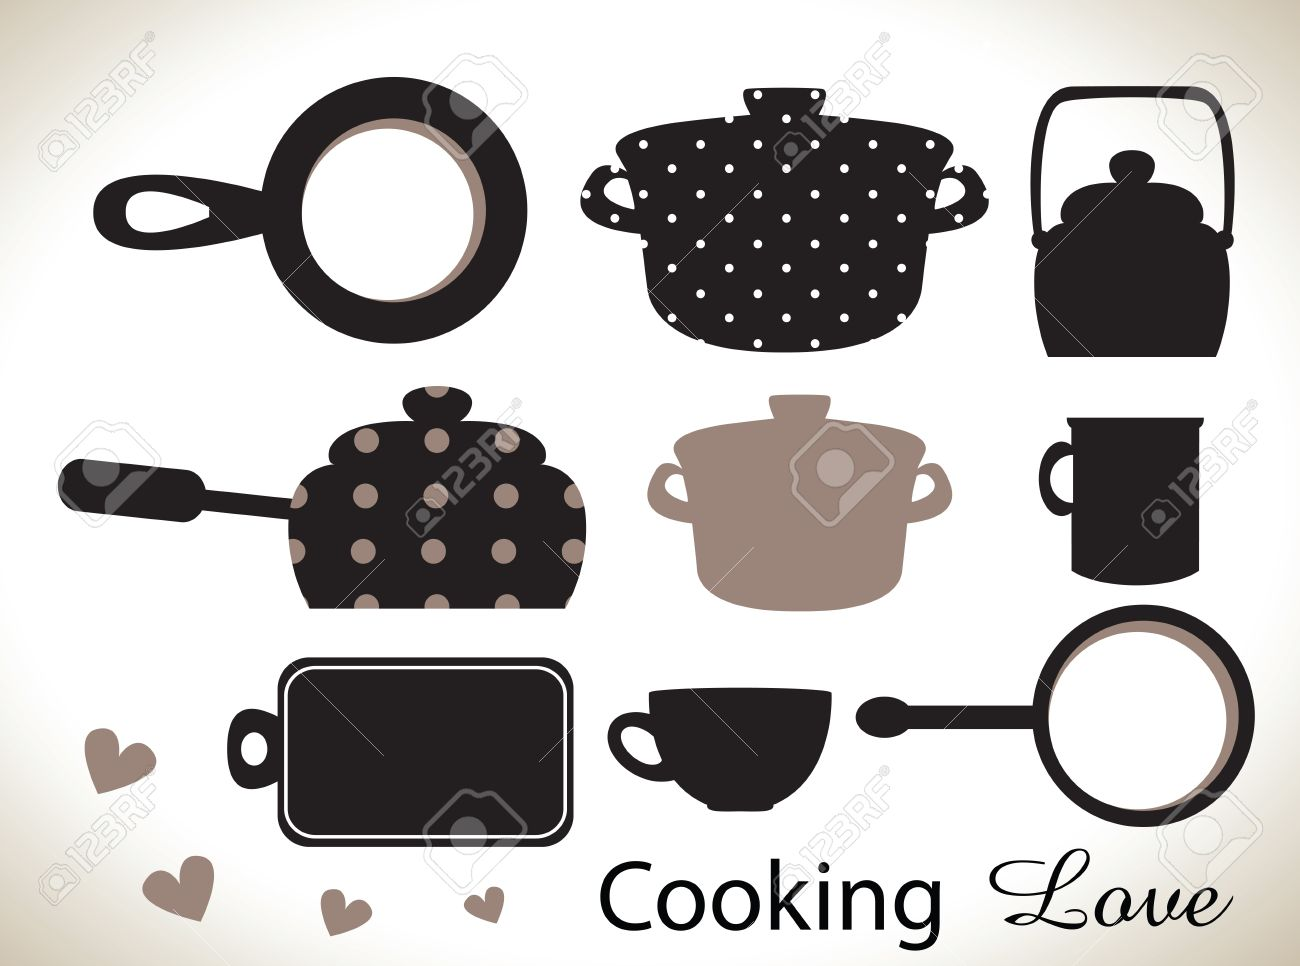 Kitchen Utensils Silhouette Vector Free kitchen utensils silhouettes royalty free cliparts, vectors, and